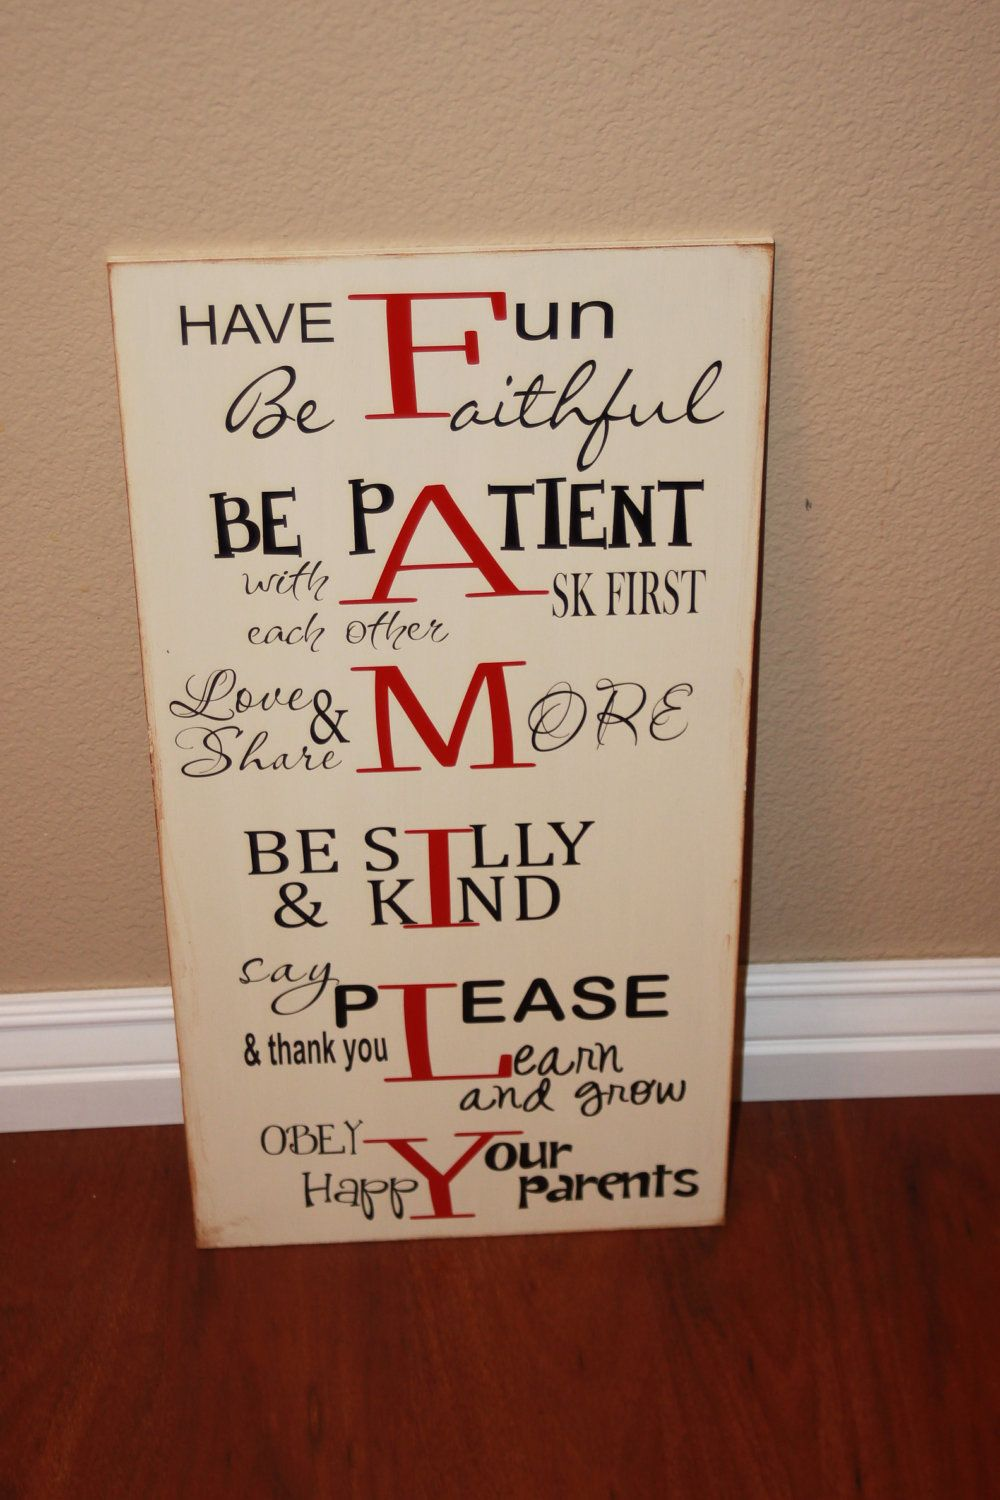 Family Rules And House Motto Board - Home Decor Wood Sign With Vinyl Lettering. 24.99